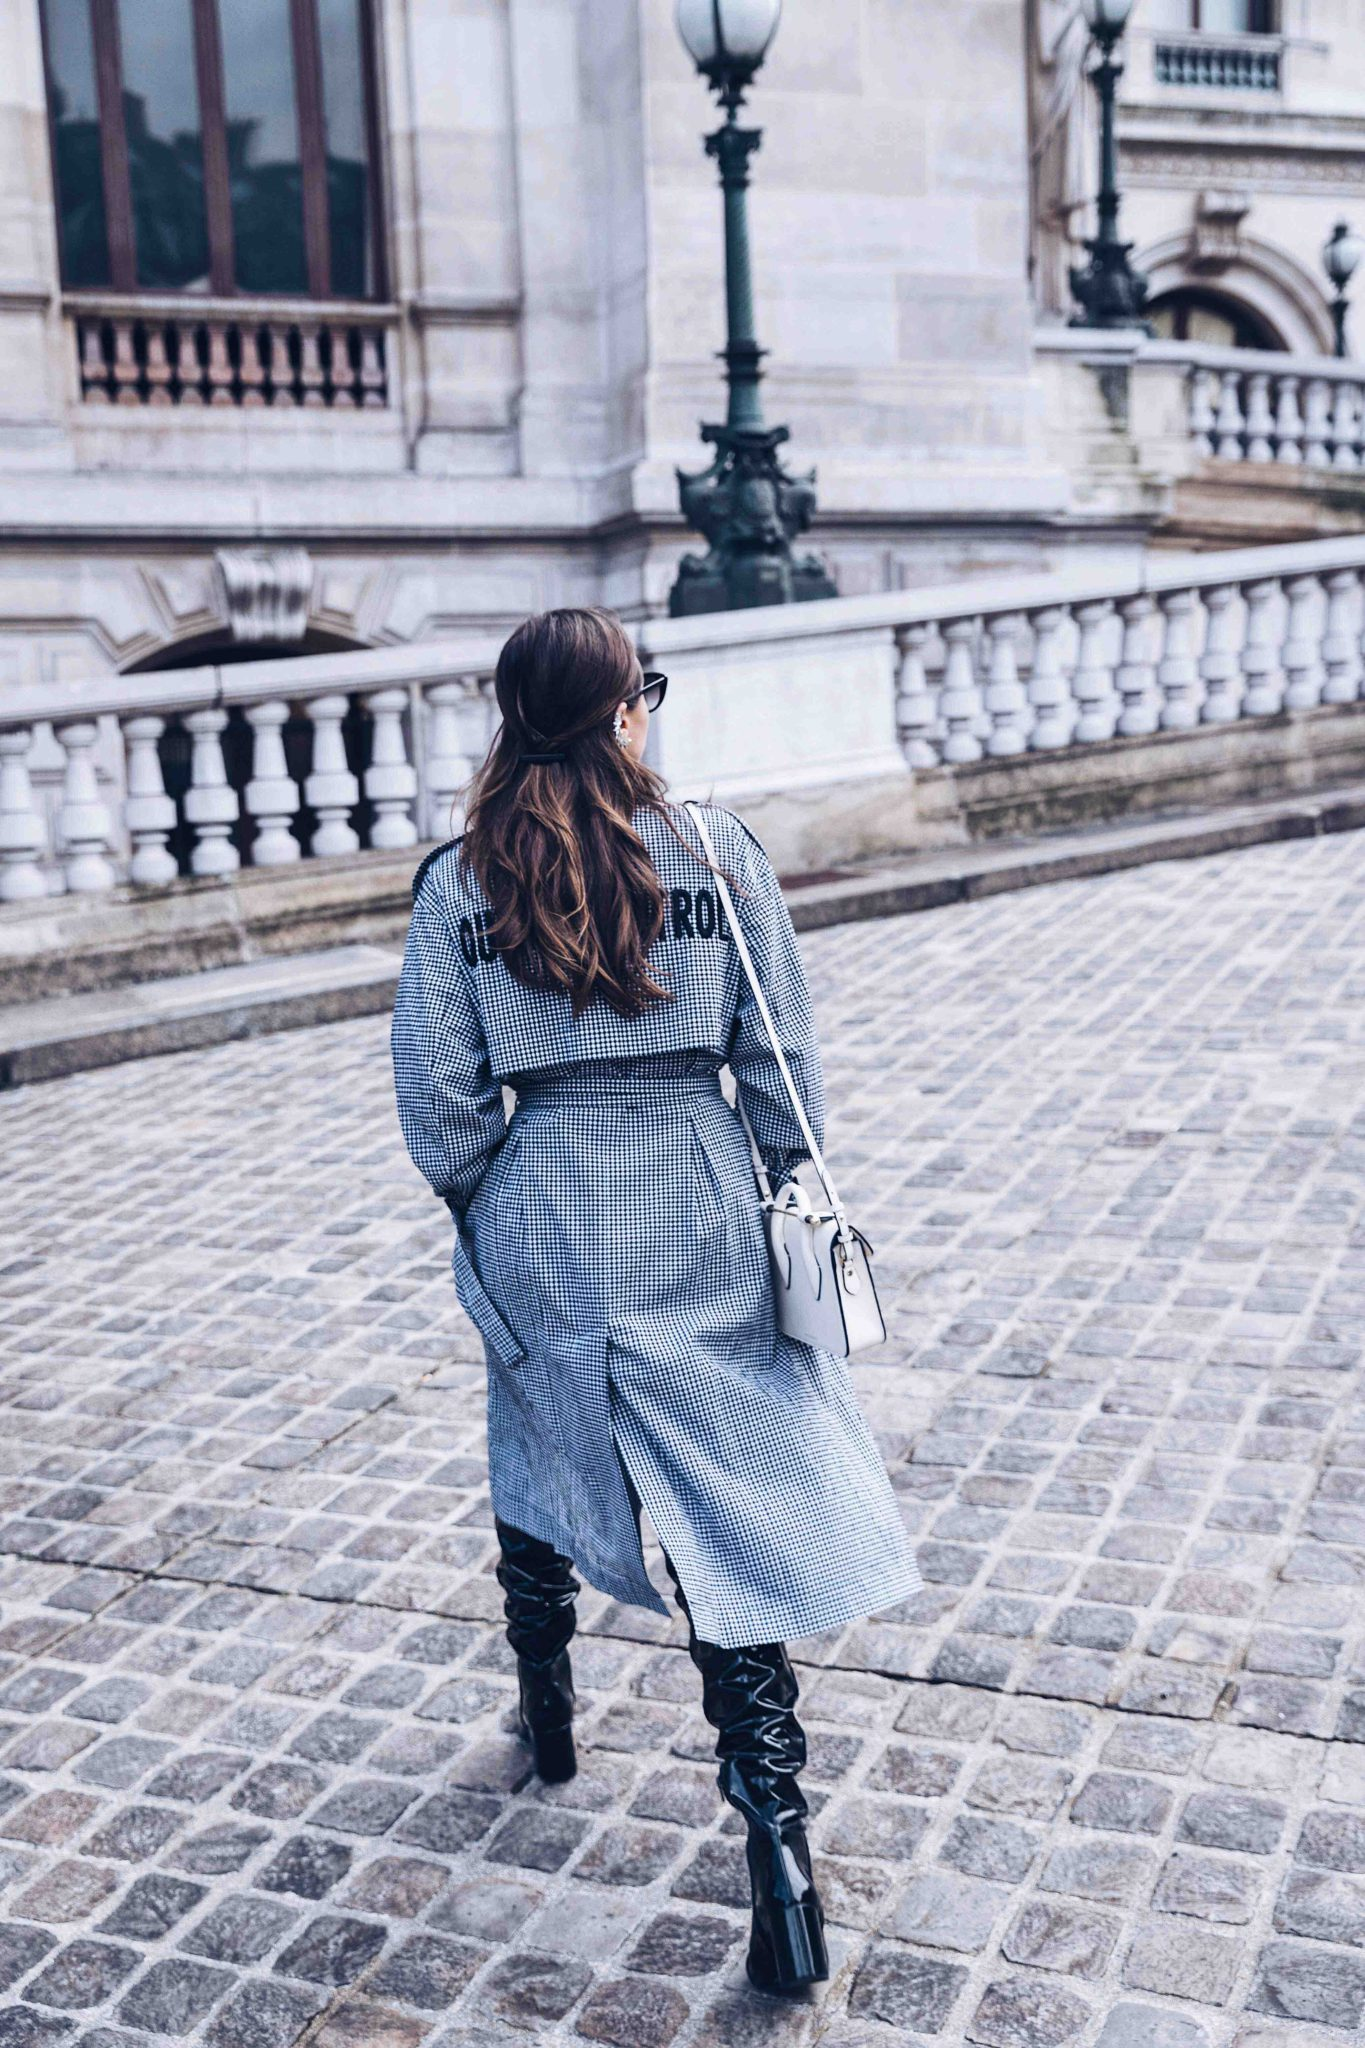 Spring Trench Coat - Gingham Trench Coat - Long Trench coat - Trench coat for women 2018 - Paris - Fashion Blogger Julia Comil styling the long trench coat in Paris - Bag: Strathberry